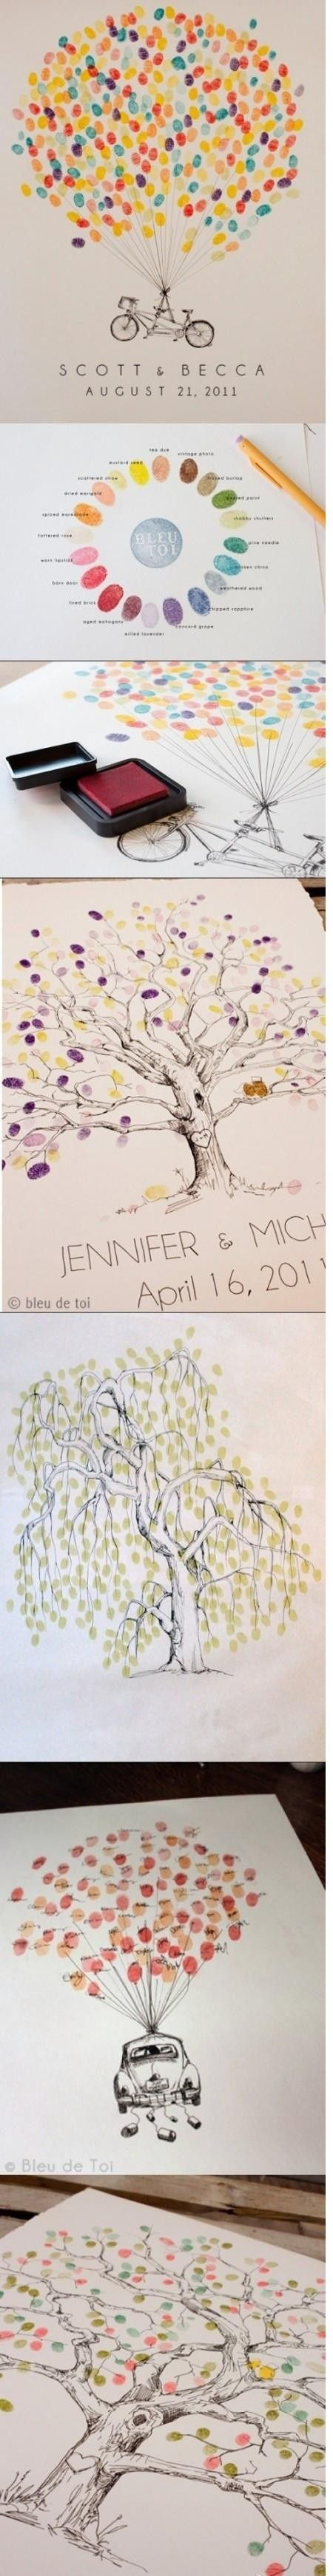 image of Wedding Guestbook Ideas